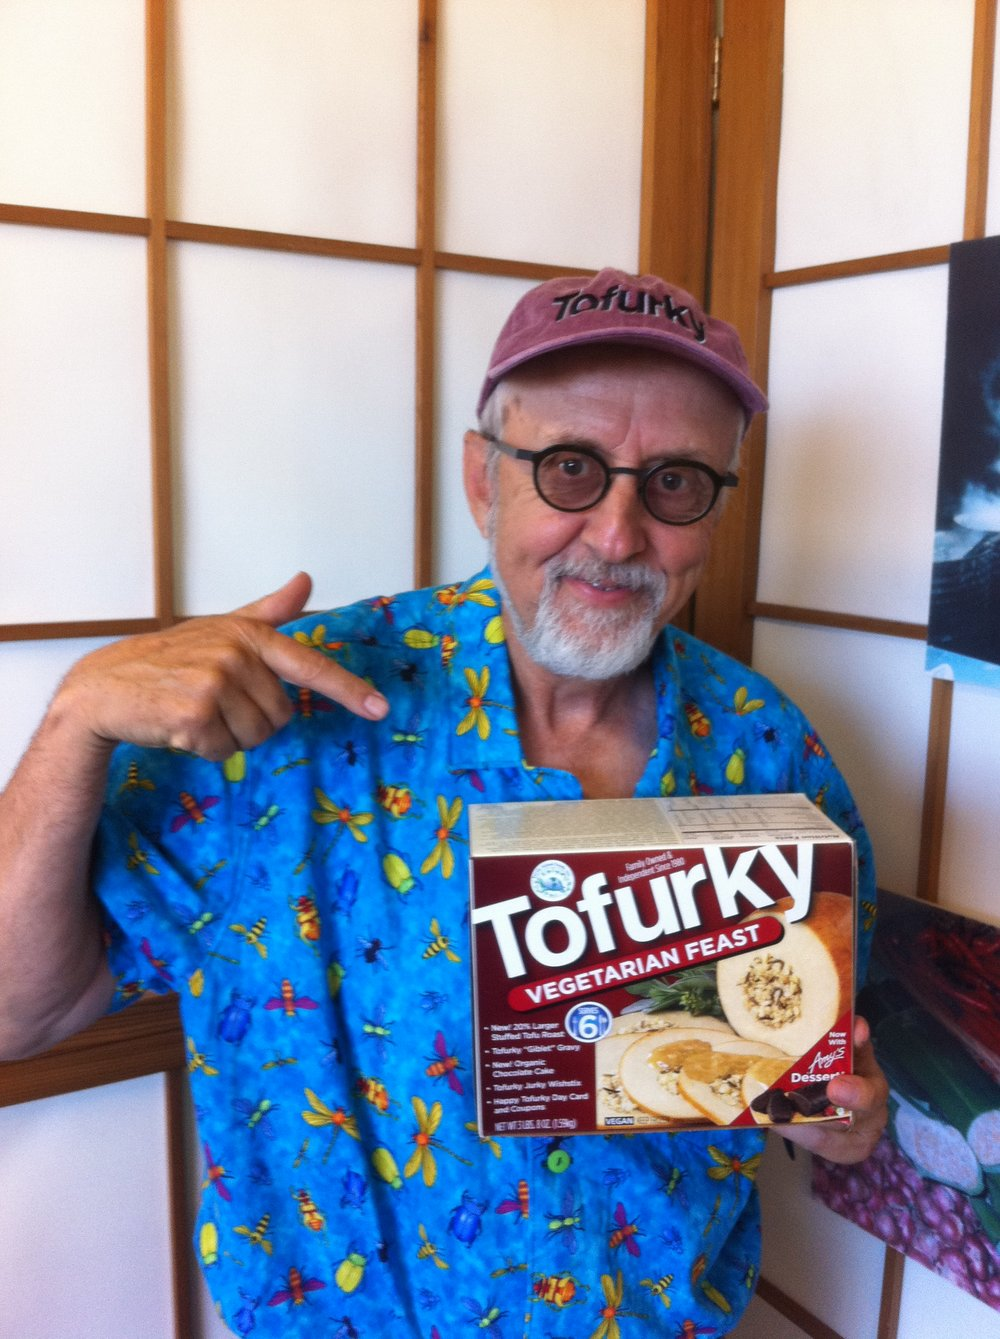 "SETH TIBBOTT - Seth Tibbott founded Turtle Island Foods, dba ""The Tofurky Company"" in 1980 on $2,500, his life savings from his 8-year career as a teacher/naturalist in the Portland, Oregon public schools. The company's first product, tempeh (a fermented soy bean cake from Indonesia), was made and delivered in small batches to fledgling natural food stores in Portland and the west coast.The first 9 years in business were a financial struggle. America was not quite ready for tempeh yet and Seth's take-home pay averaged $290 for those years. Living the dream but losing his shirt, Seth rented four trees in 1984 near the tempeh shop for $25.00 per month and built a 3-story tree house in which he lived for the next 7 years.In 1995, the company's fortunes changed with the introduction of the first Tofurky roasts at Thanksgiving. 500 roasts were sold that year throughout the Pacific Northwest but soon a larger, national market came calling.Today, 38 years after its founding, Tofurky is still a family owned, independent enterprise and Seth is the company's Chairman and stepson, Jaime Athos is now CEO, carrying the dream forward. Tofurky is a model of ""slow growth"" and is unique for never having any equity investment except for $17,000 from Seth's brother Bob in 1989. Today, Tofurky products are sold in over 21,000 stores worldwide on 6 of 7 continents and are made in a new eco production plant built to LEED Platinum standards. Seth has been overseeing Tofurky sales in the export market for the past 4 years which has afforded him the opportunity to witness firsthand the current explosion of veganism throughout the planet."